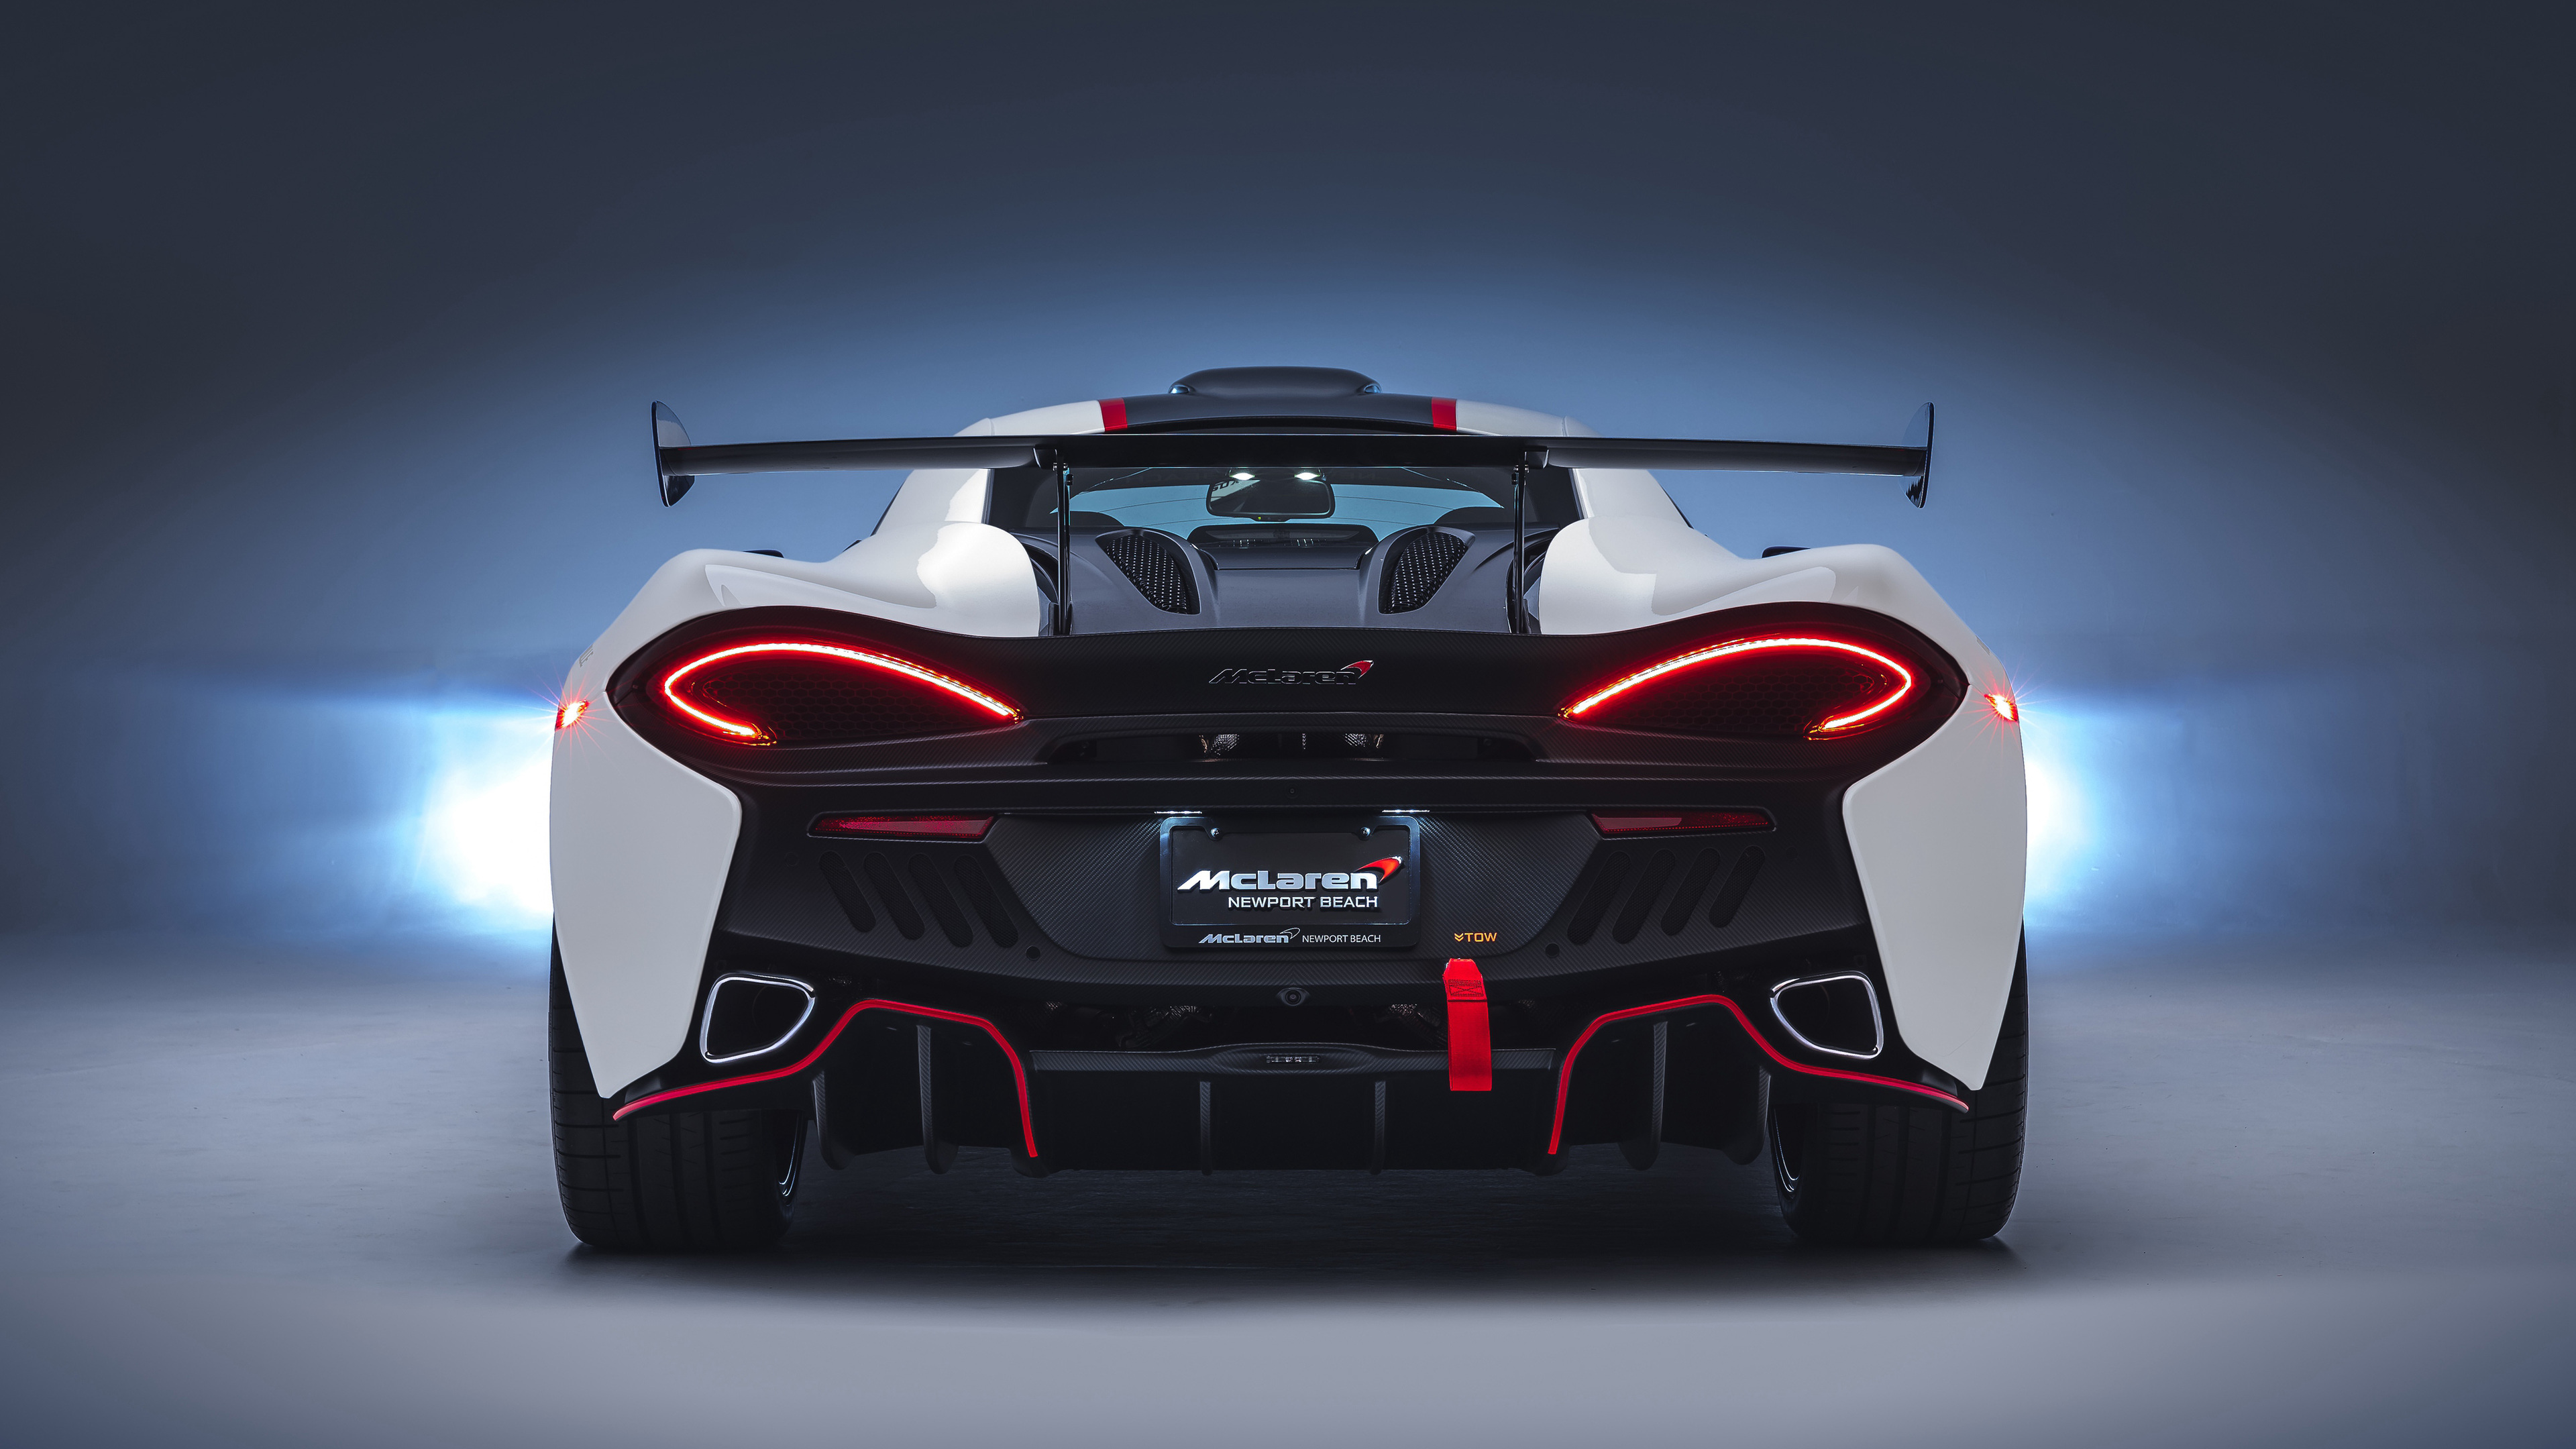 mclaren mso x 2018 rear 1539109236 - McLaren MSO X 2018 Rear - mclaren wallpapers, mclaren mso x wallpapers, hd-wallpapers, cars wallpapers, 4k-wallpapers, 2018 cars wallpapers